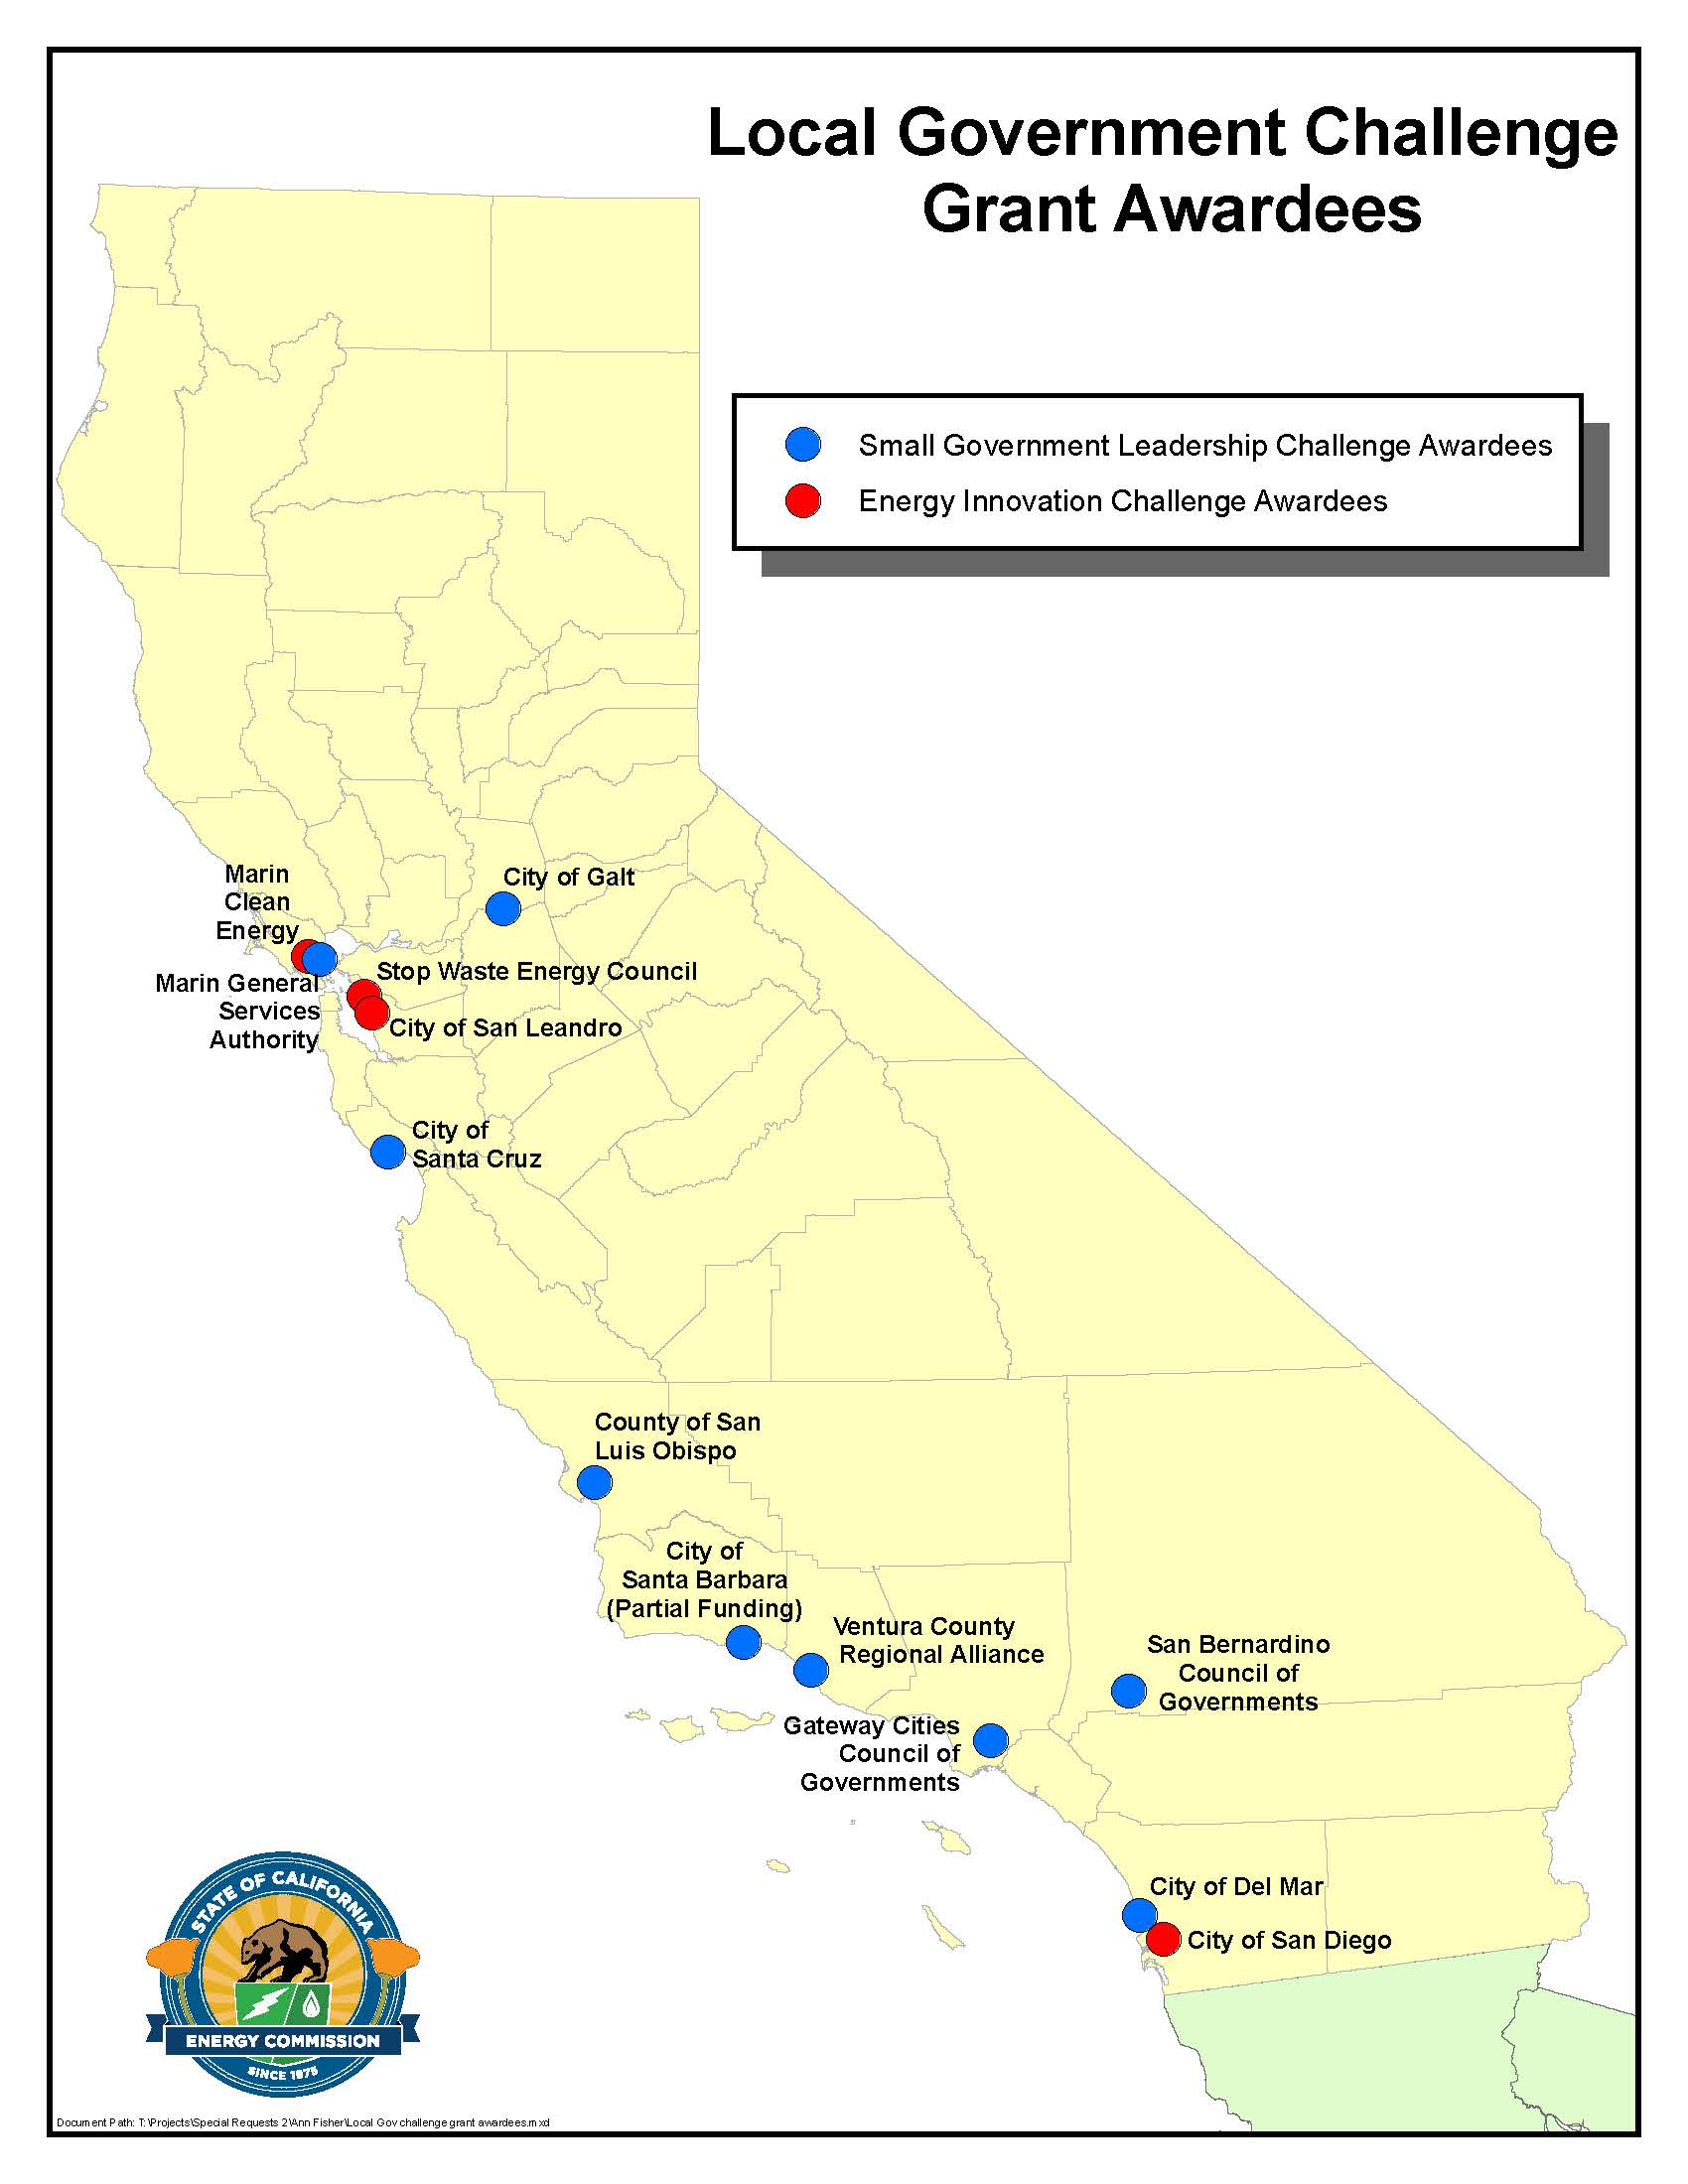 Image of California showing Local Government Challenge Grant Awardees locations